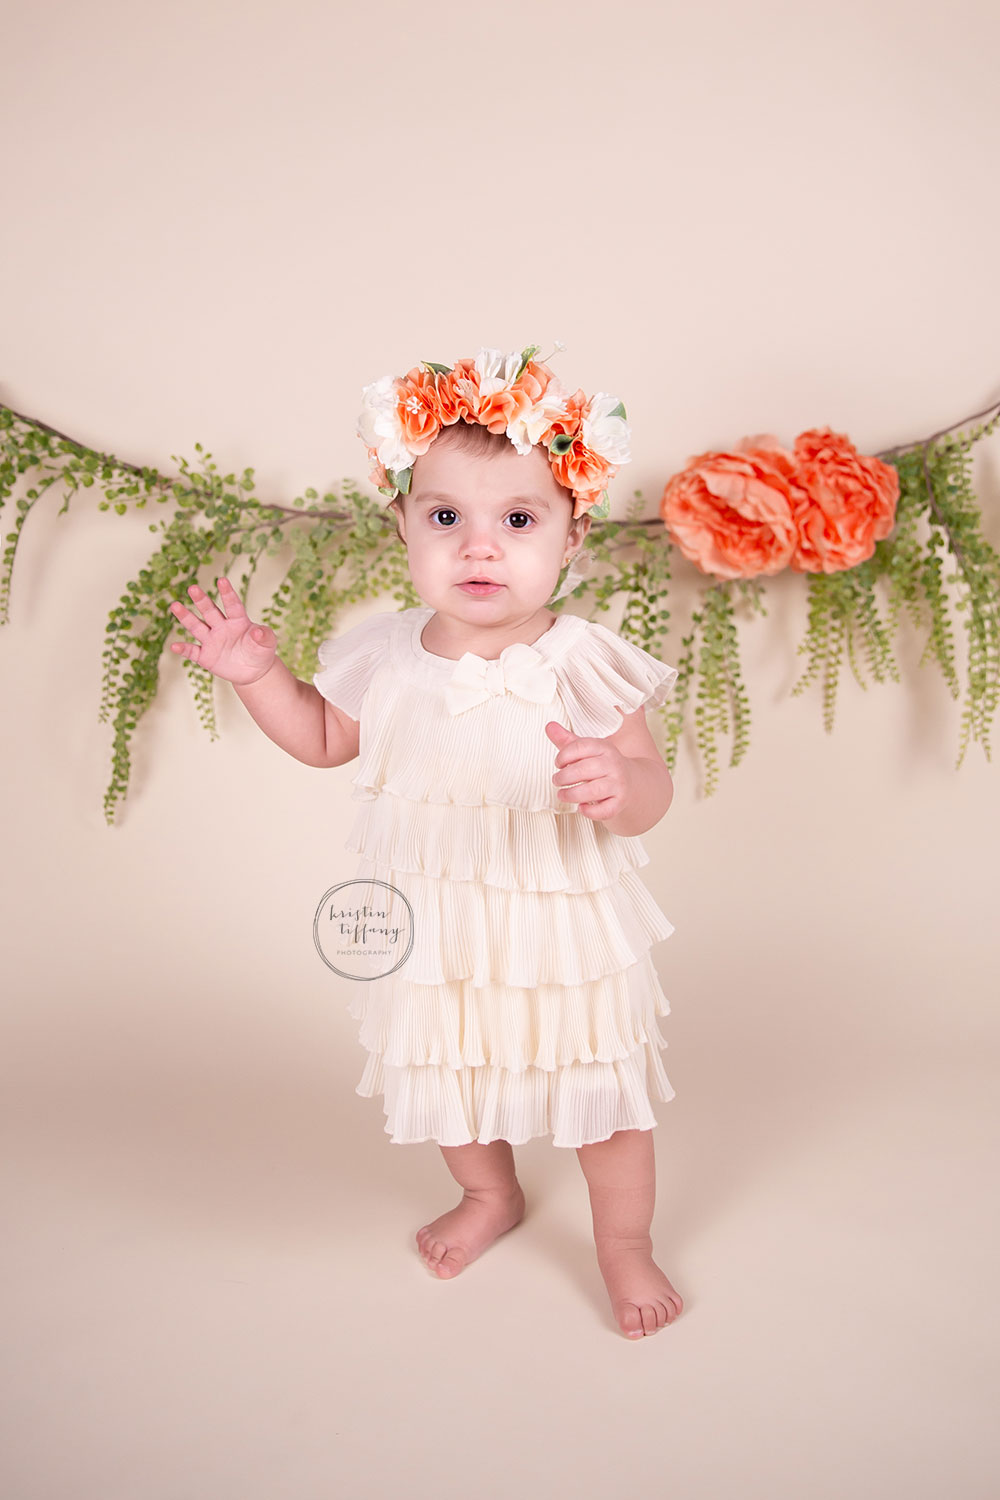 a photo of a baby girl at her first birthday photo shoot